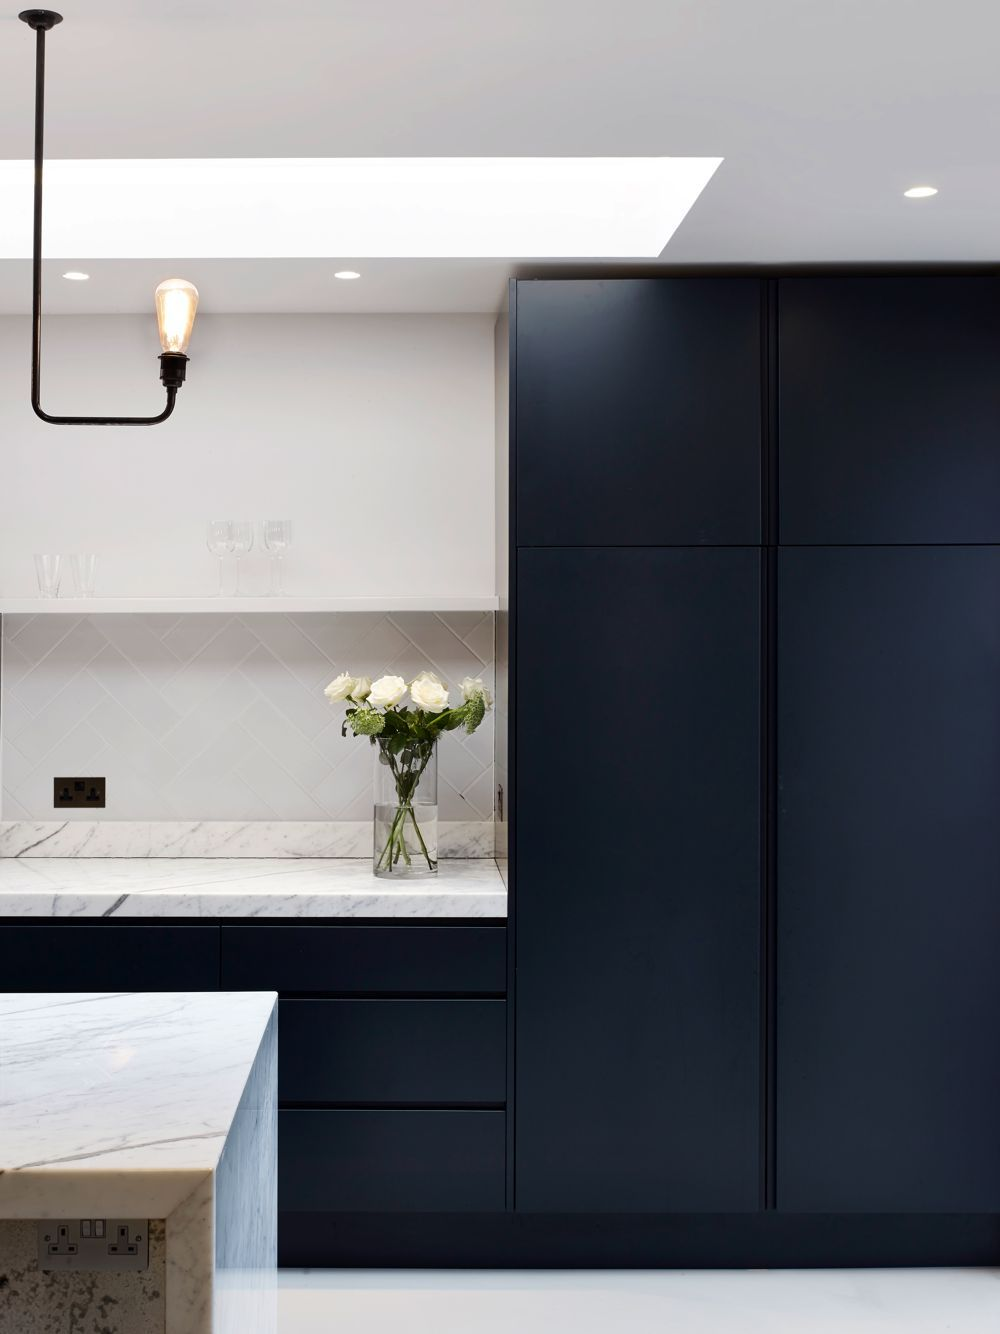 Kensington Kitchen Cabinets: North Kensington Home - Stiff + Trevillion